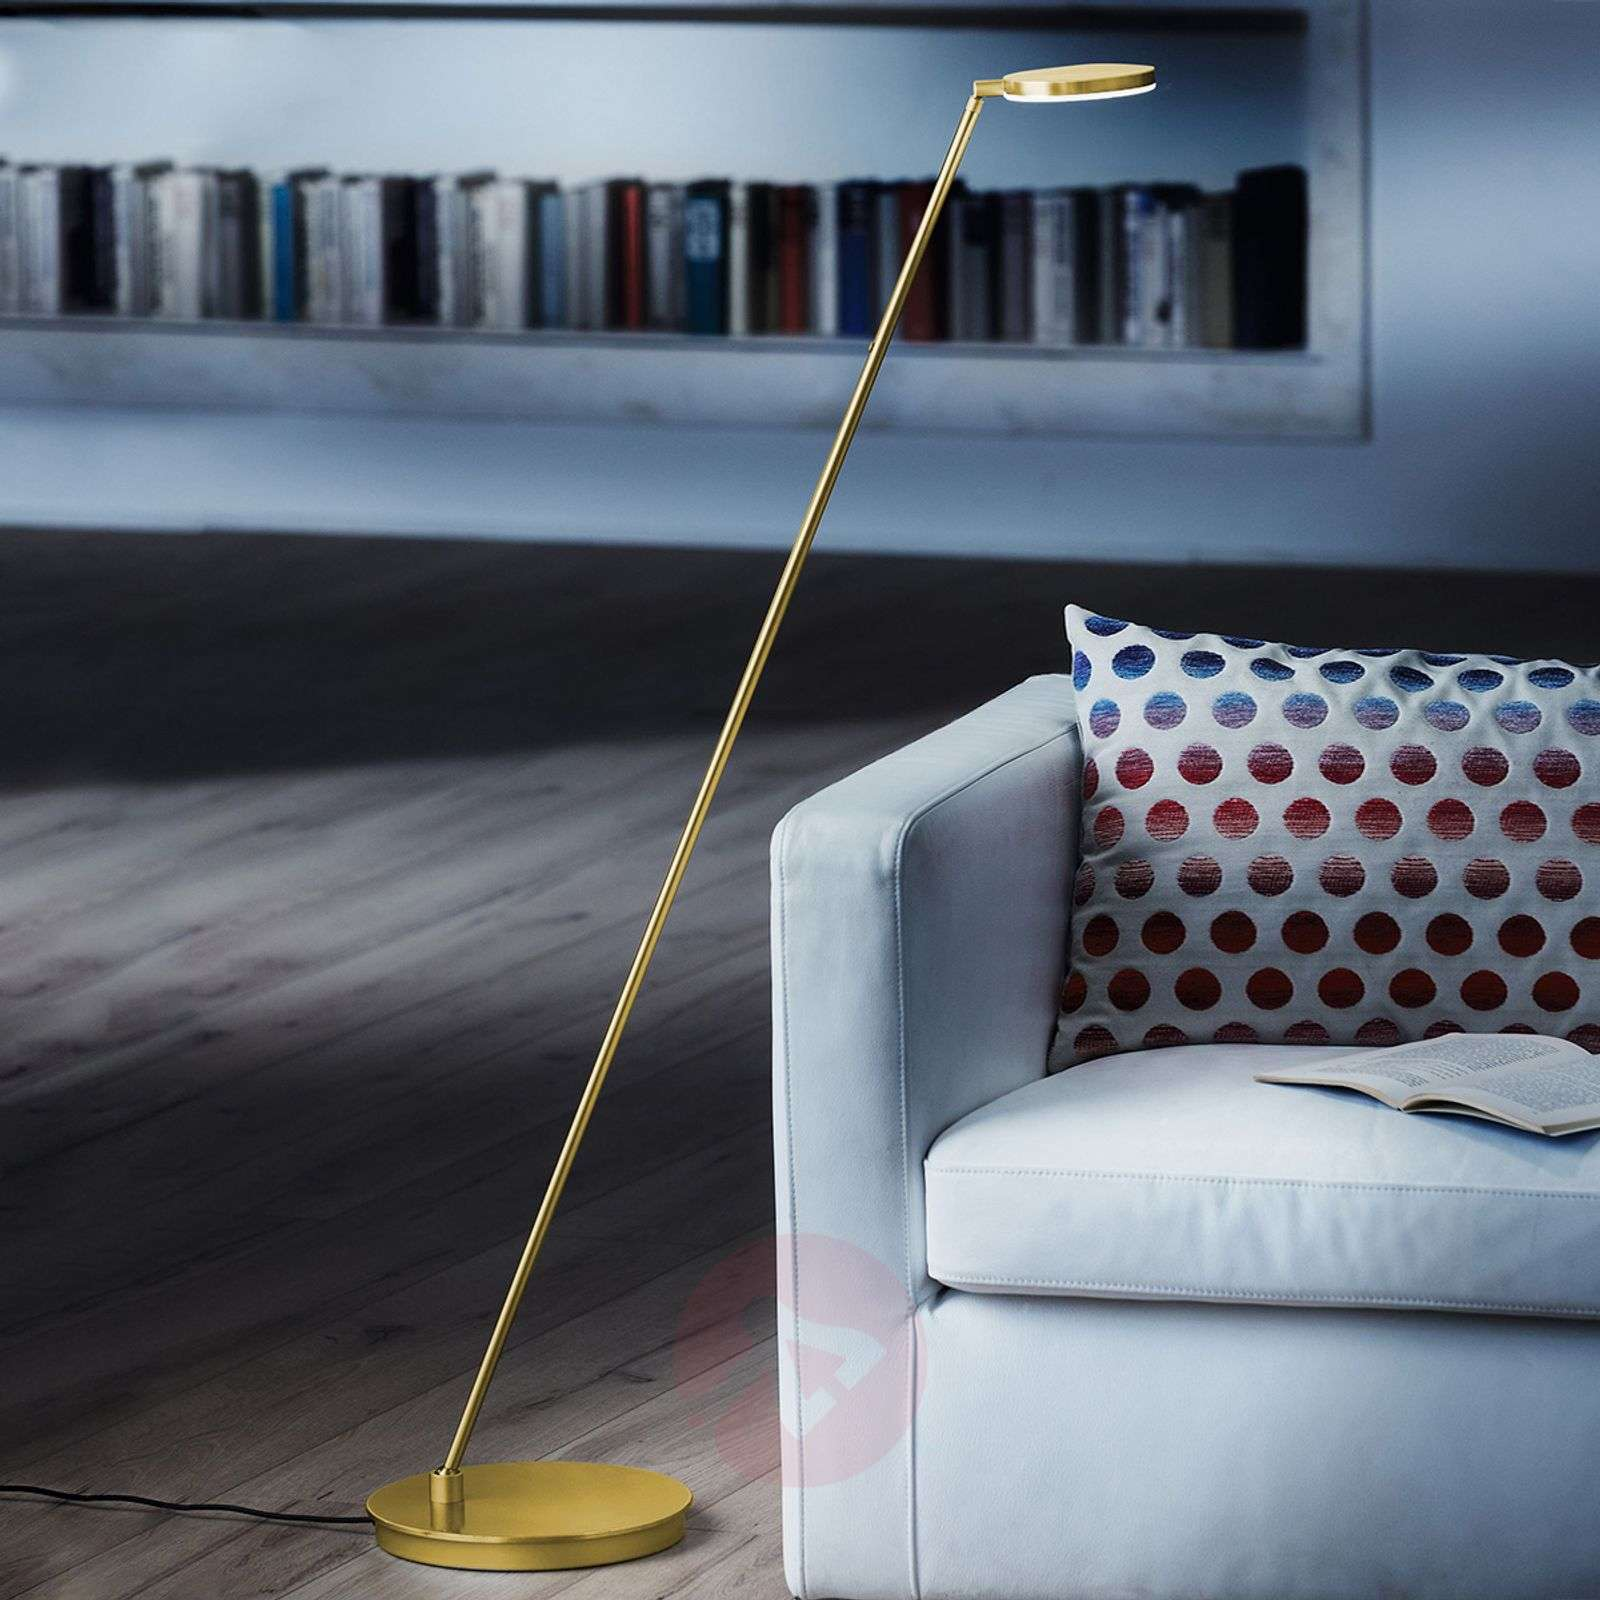 Lampadaire LED inclinable Plano S, laiton-4529174-01